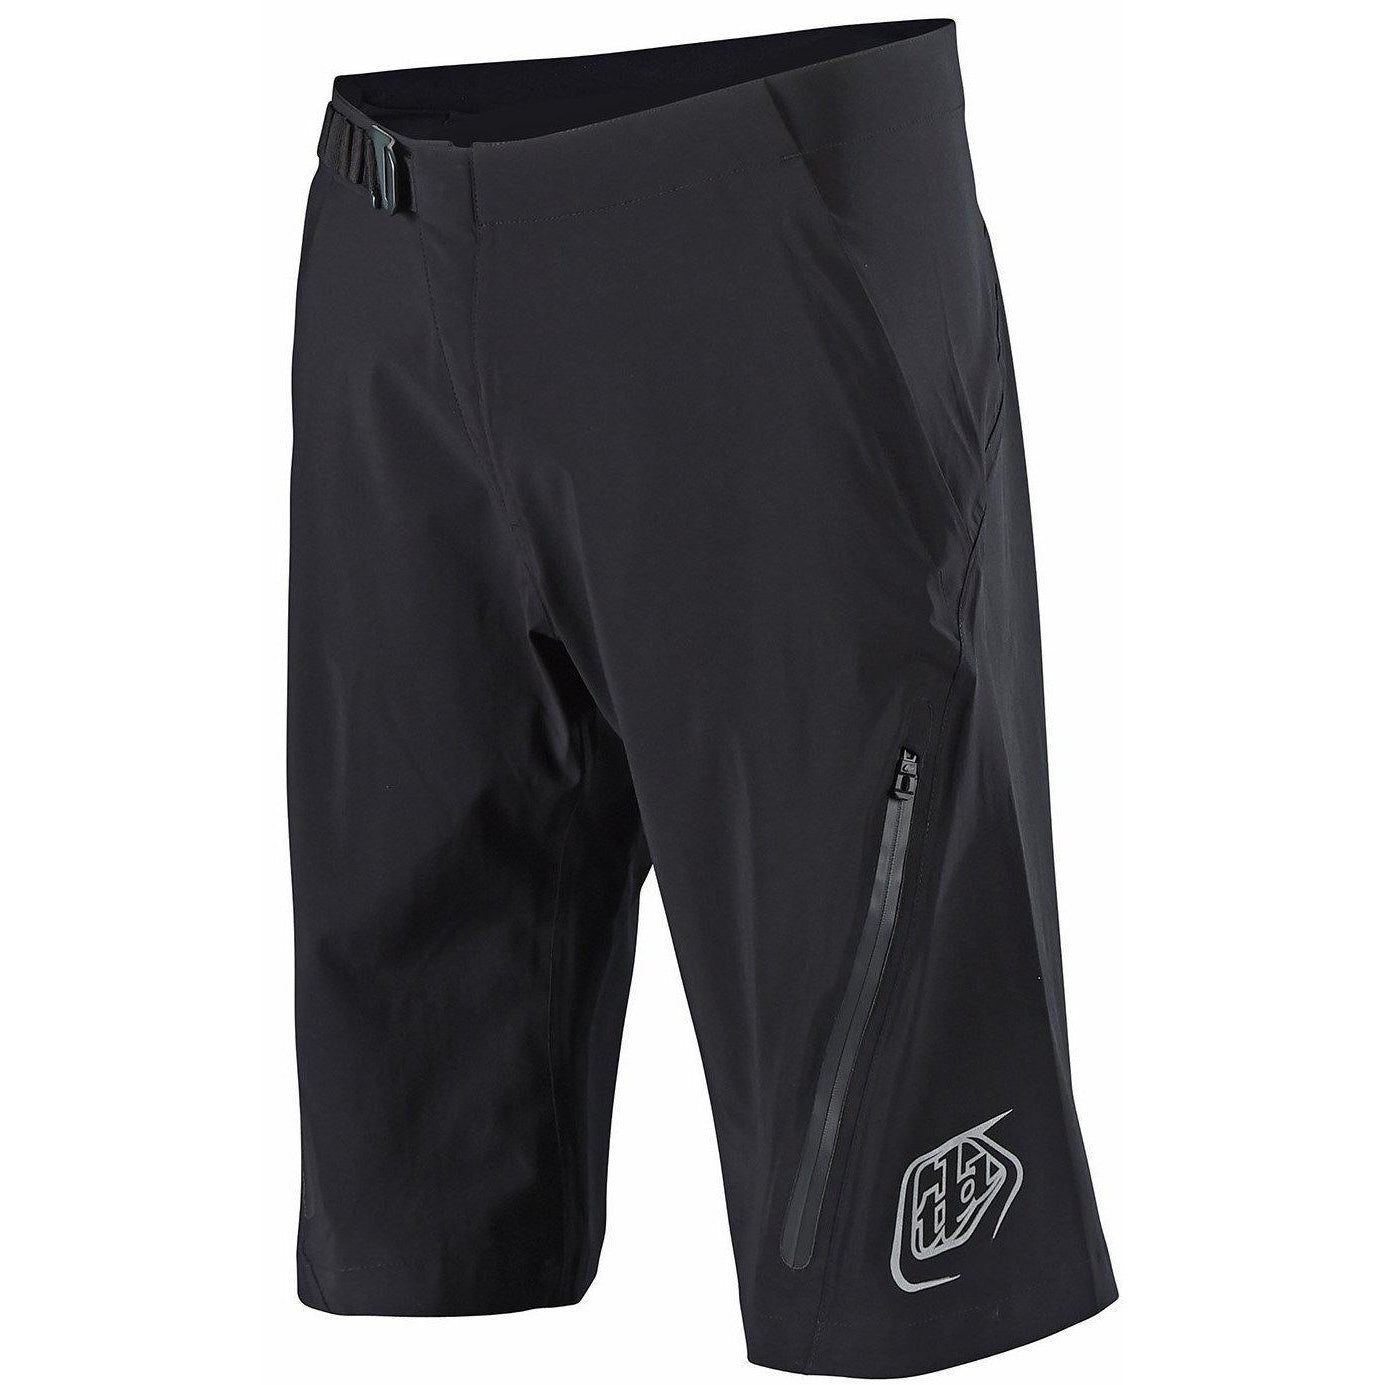 Troy Lee Designs-Troy Lee Designs Resist Shorts-BLACK-38-TLD242003206-saddleback-elite-performance-cycling